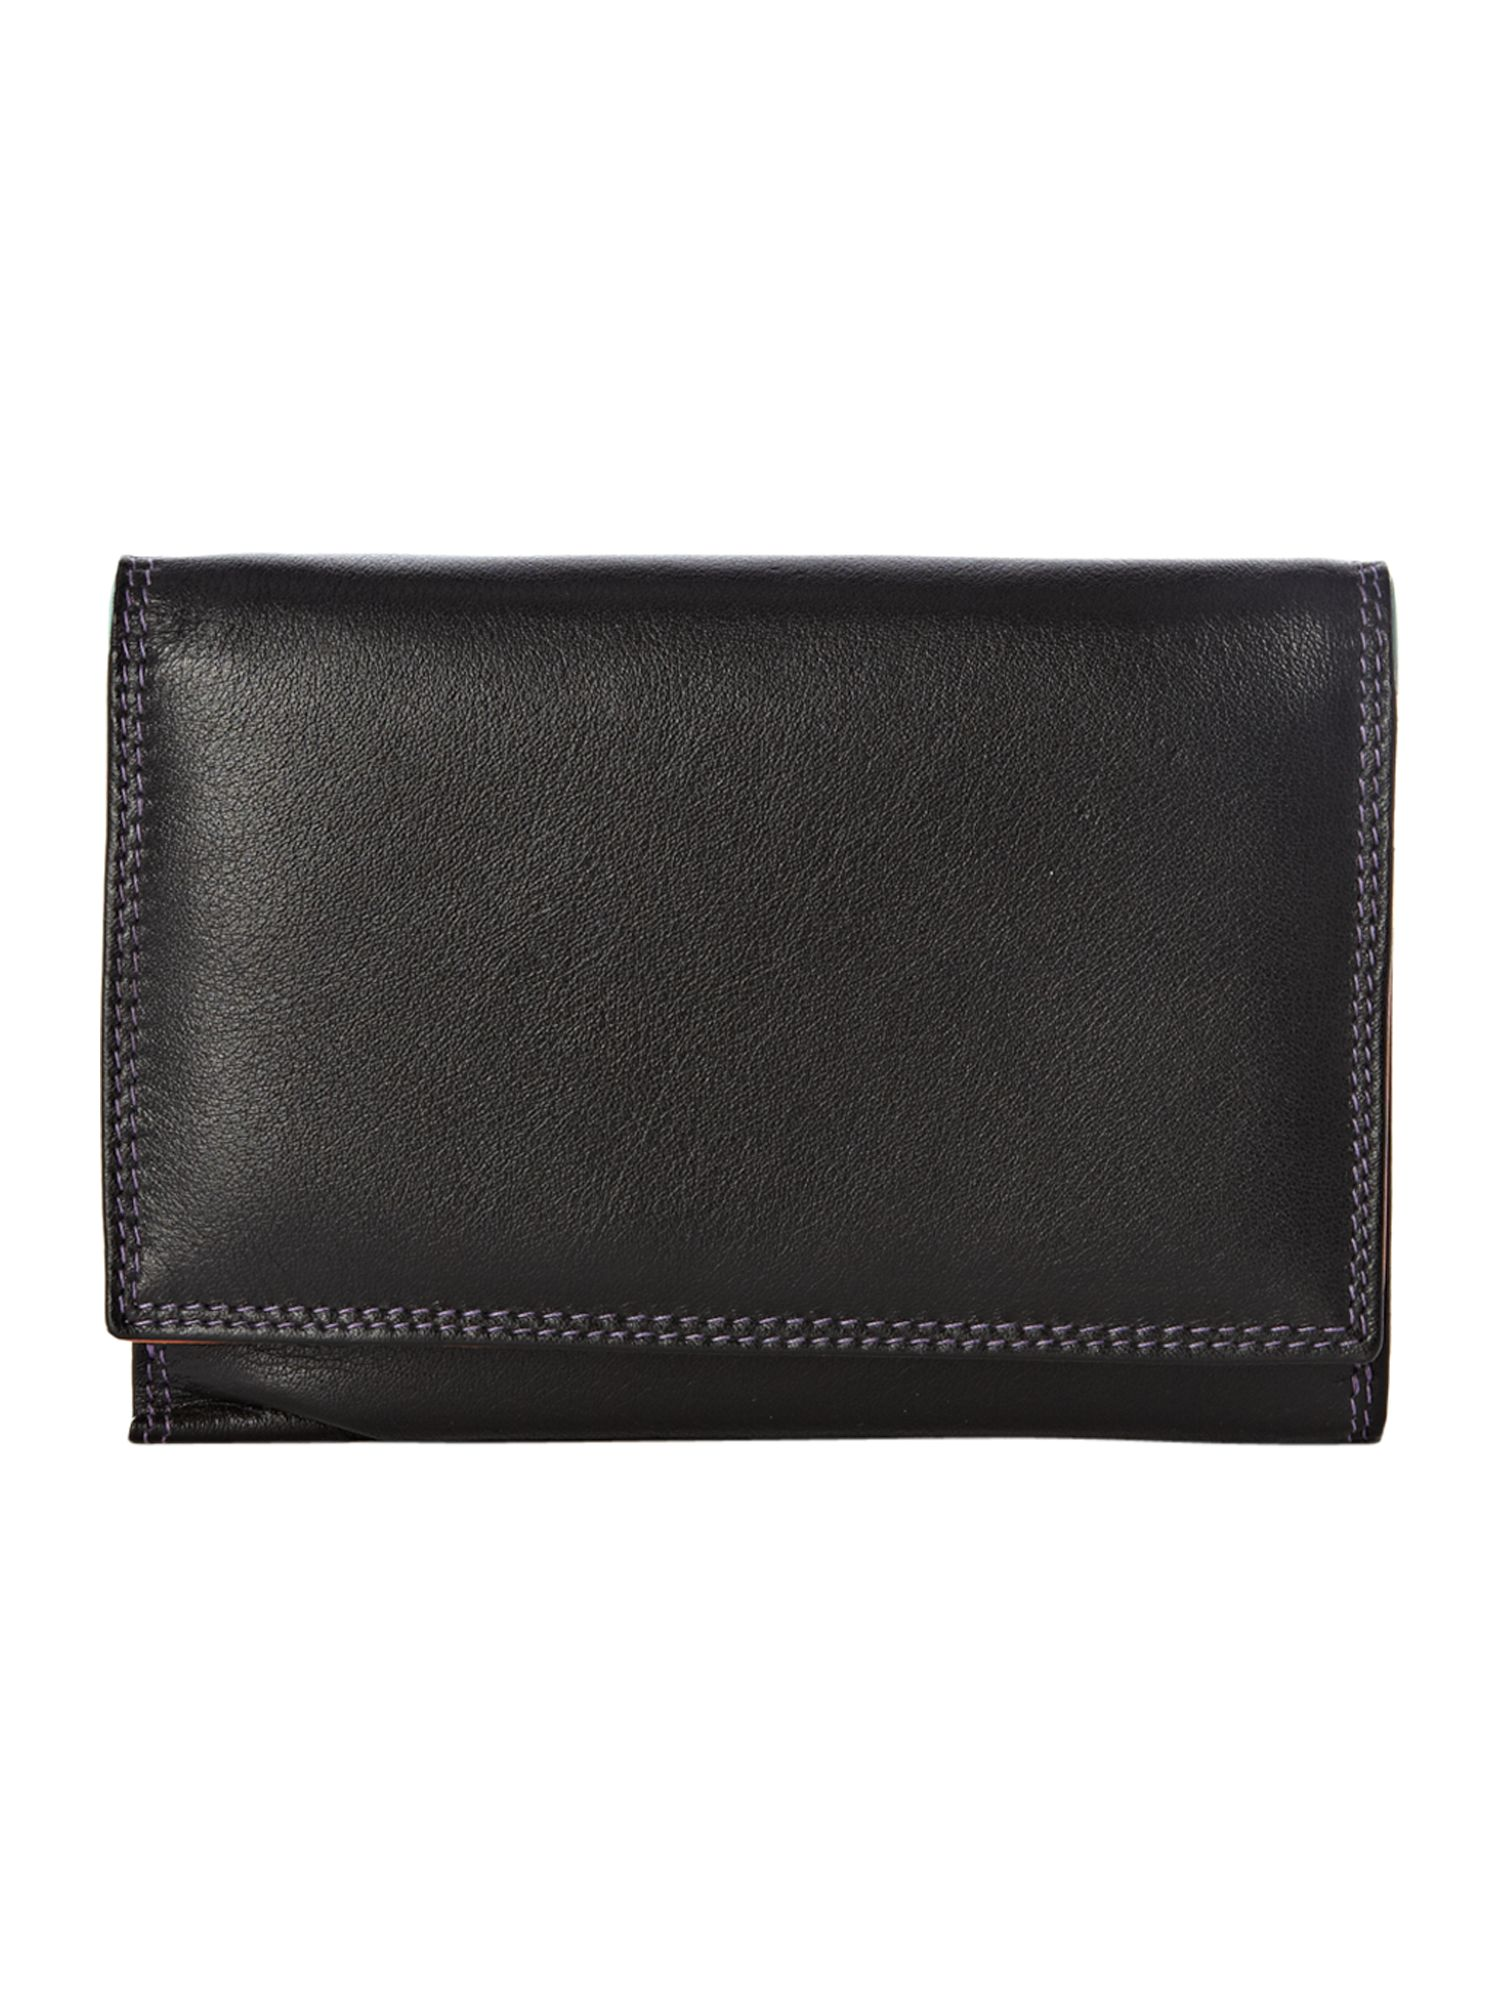 Black Medium Double Flapover Purse